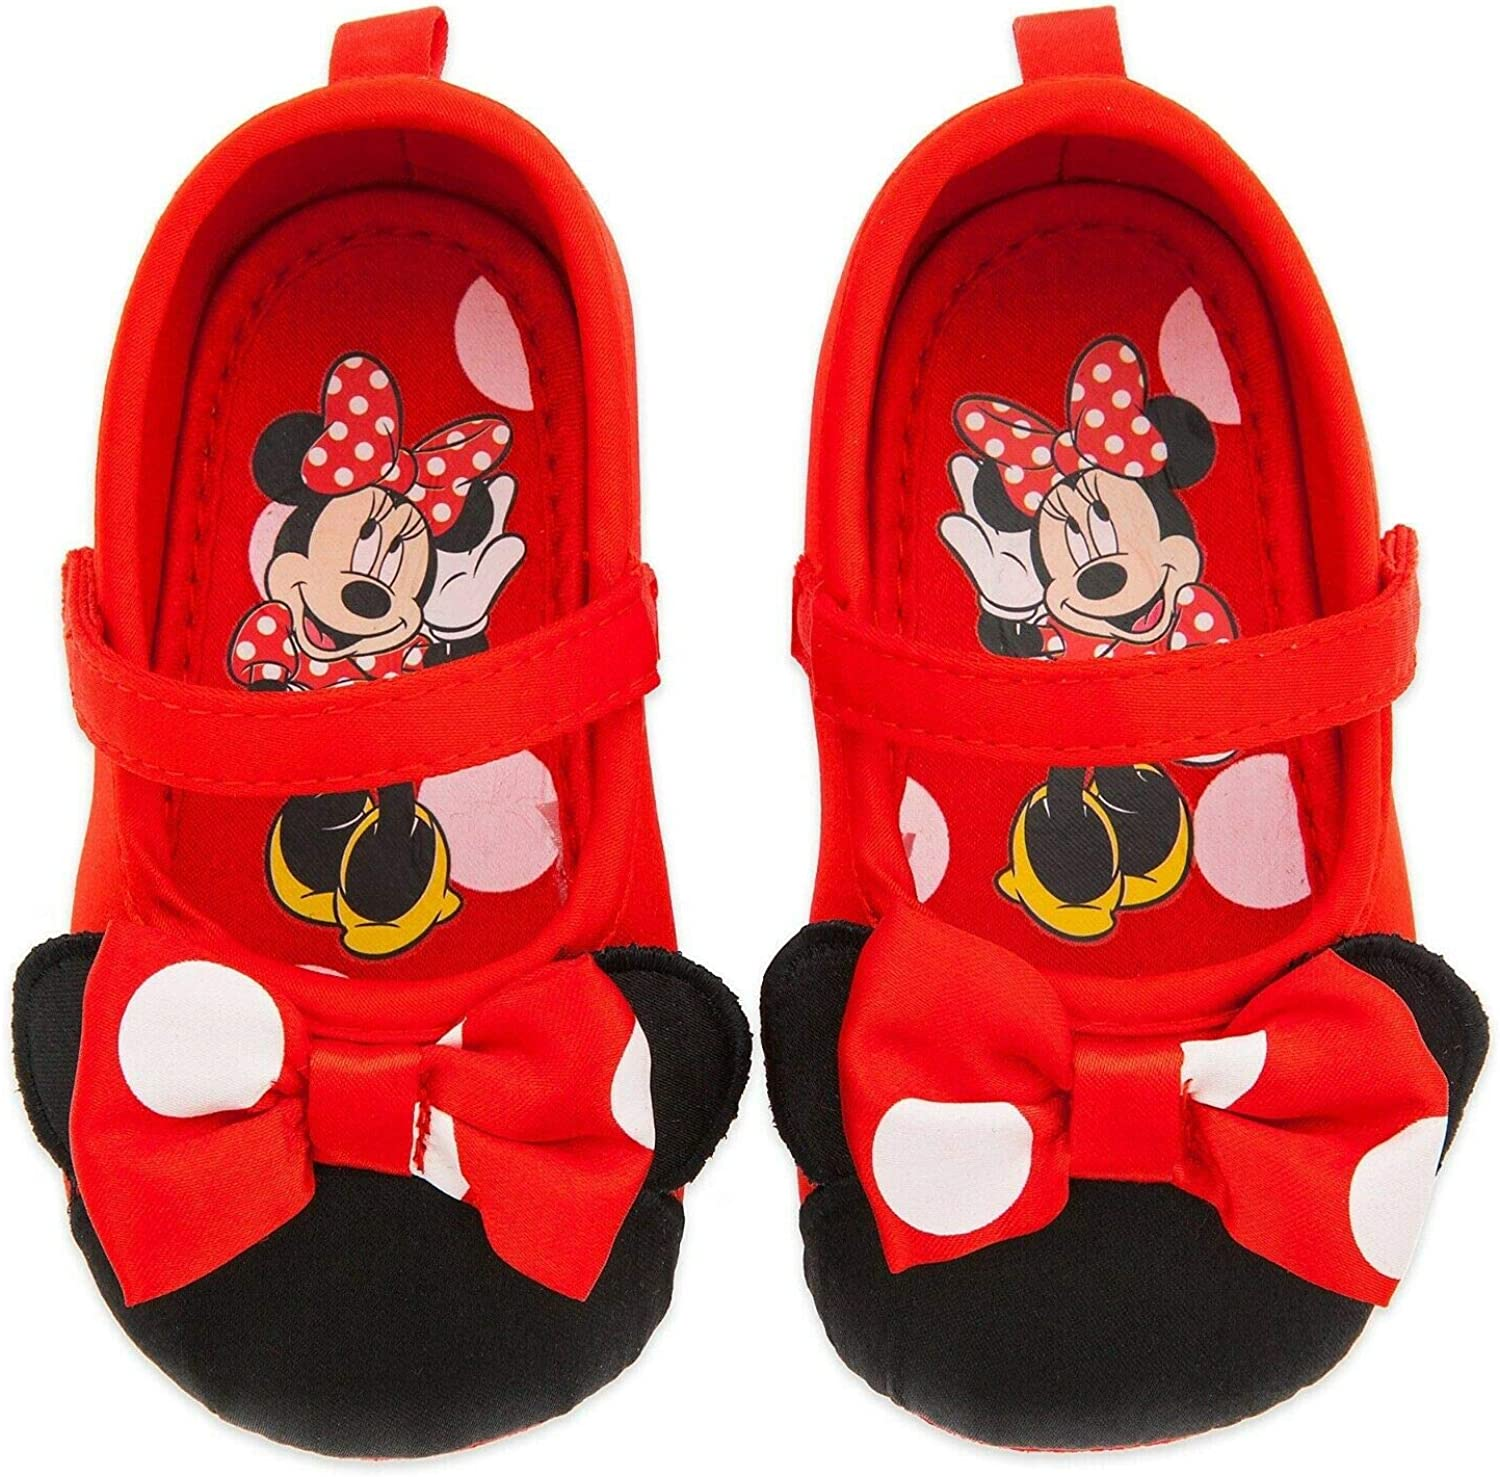 Disney Store Minnie Mouse Red Polka Dot